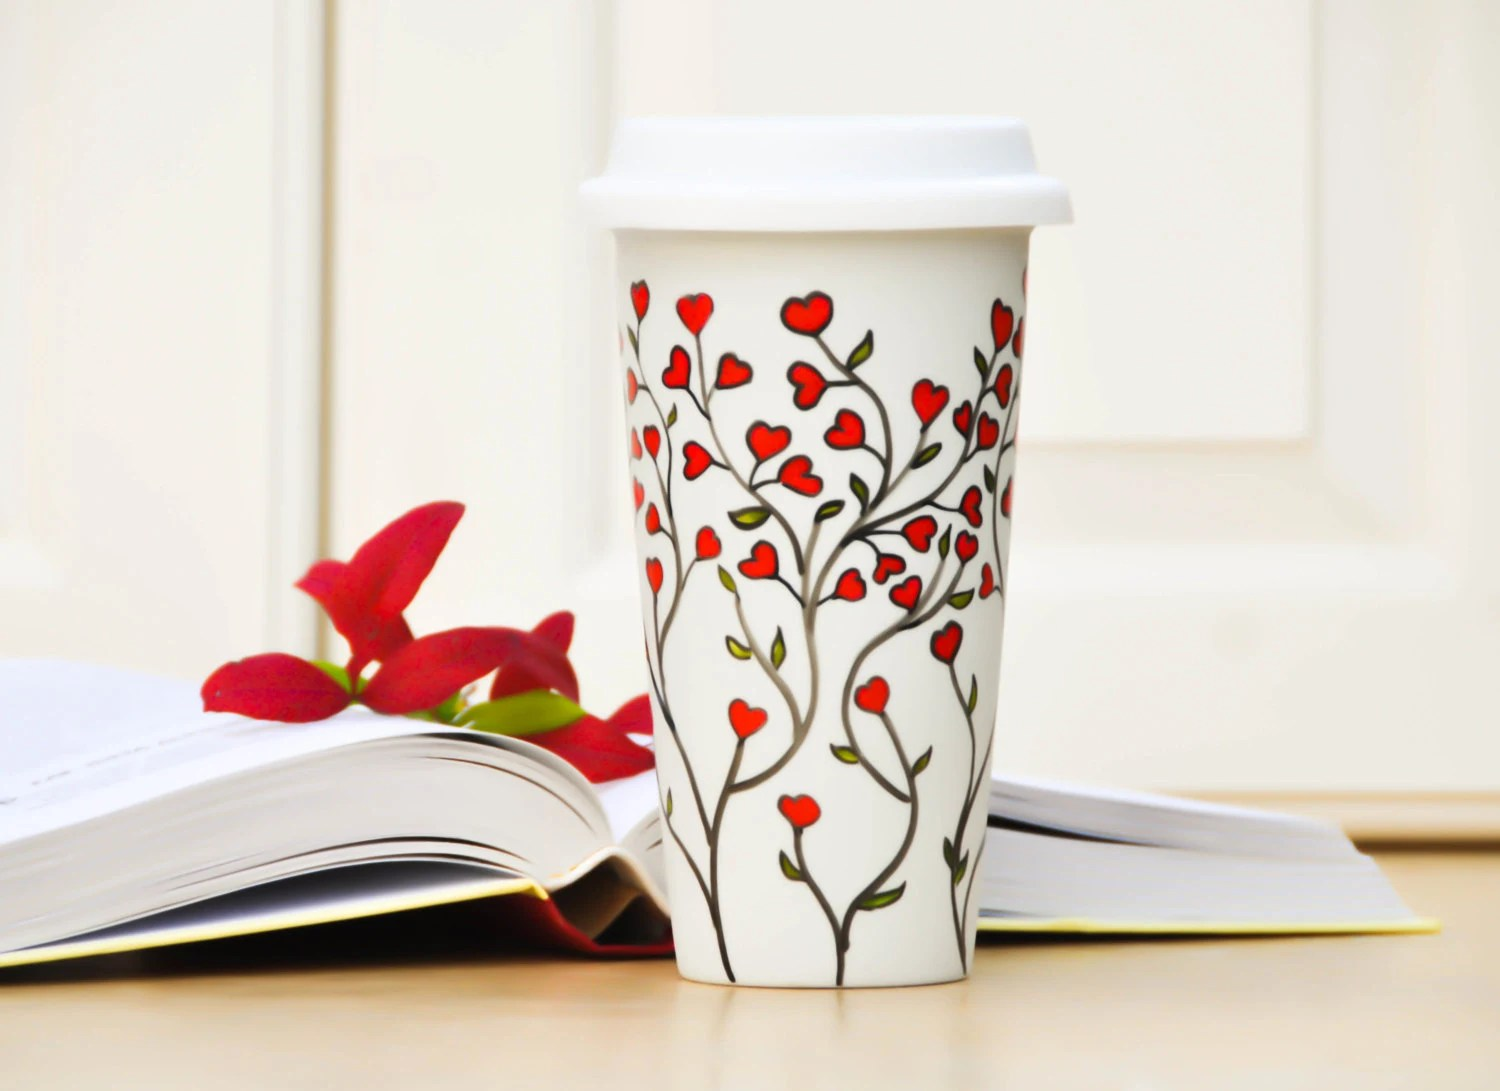 White Ceramic Travel Mug - Red hearts eco cup - To Go Mug with Lid - Hand Painted Insulated Tumber - Valentine's Day Gift - Love - PictureInADream